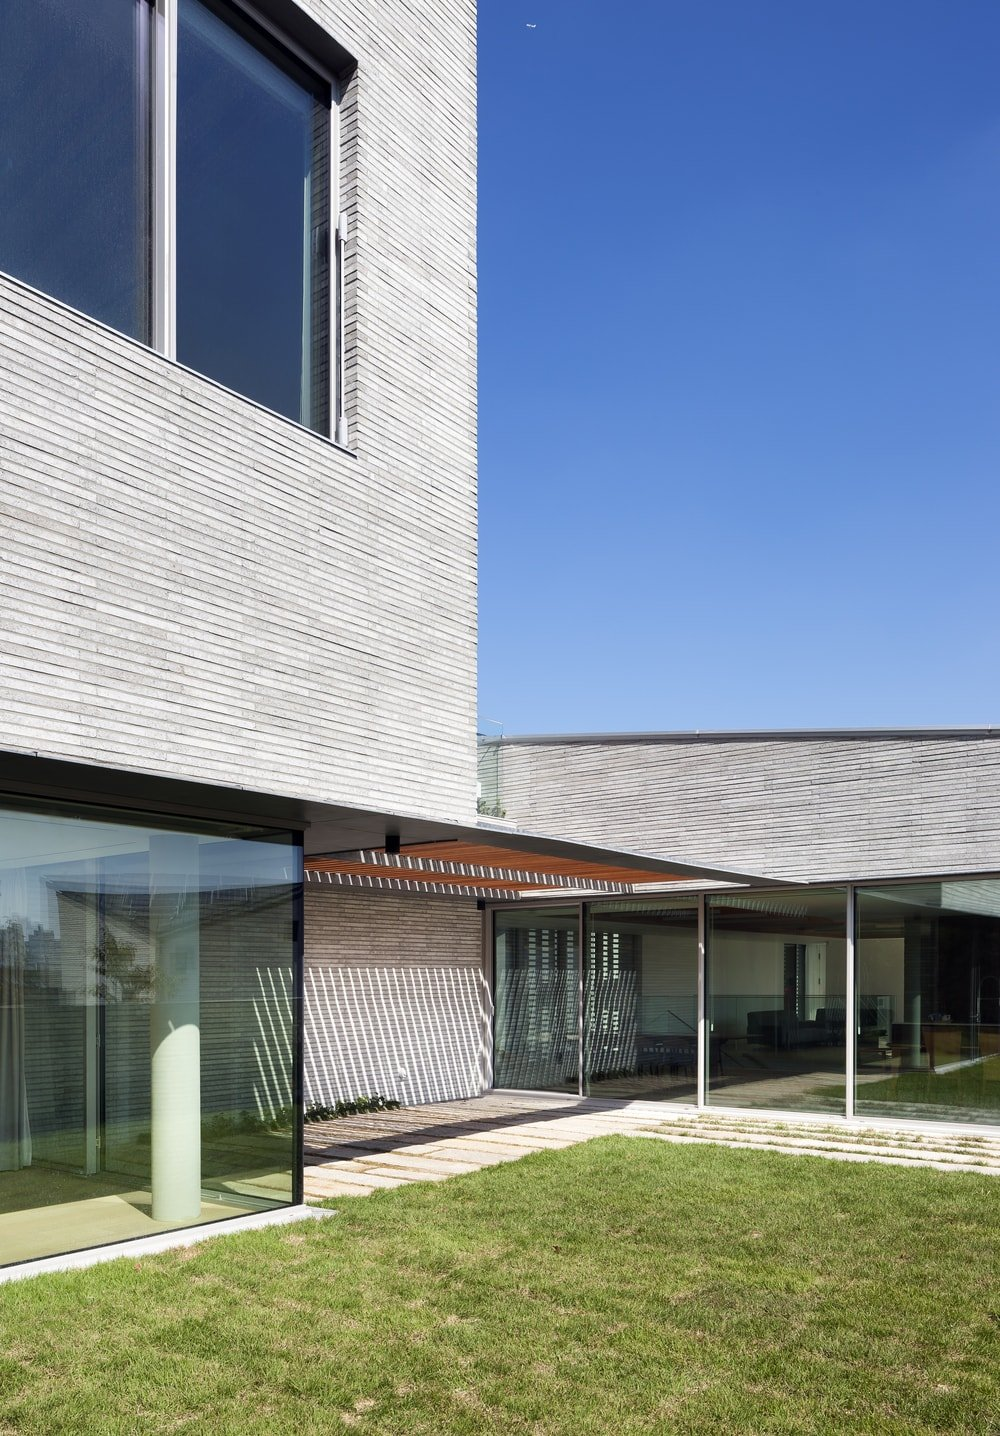 This is a side of the house with covered walkways, grass lawn and glass walls.